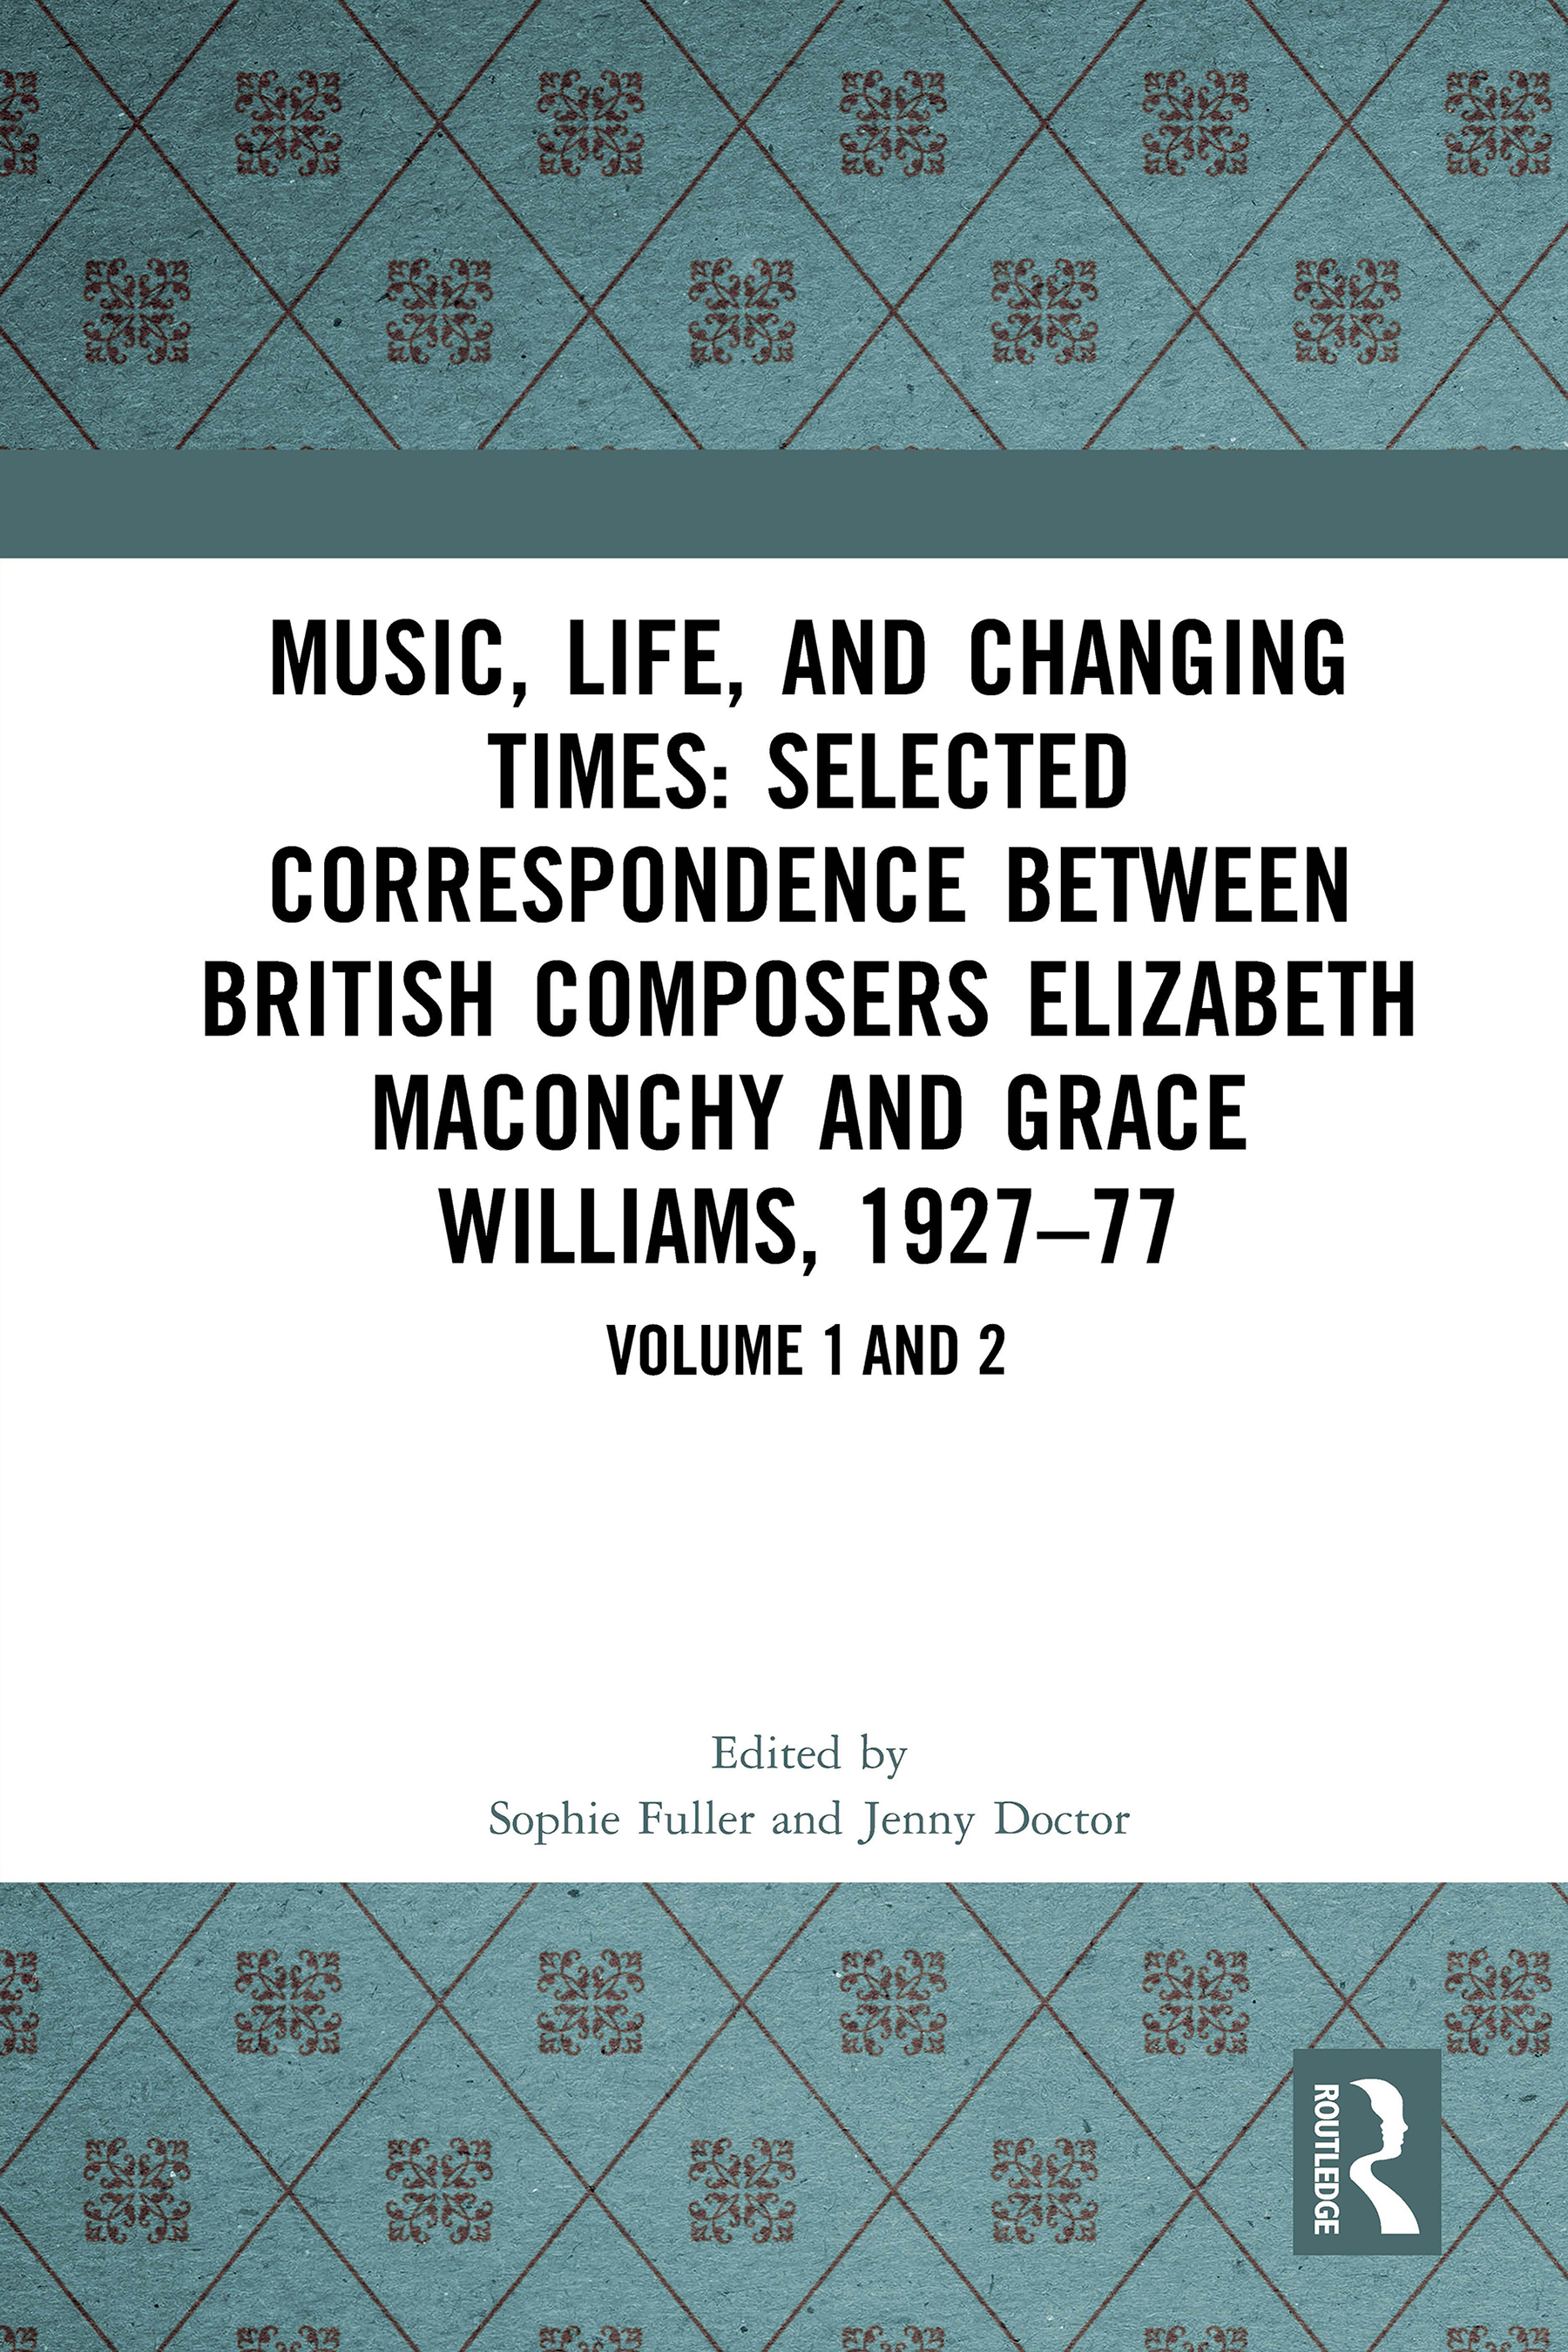 Music, Life, and Changing Times: Selected Correspondence Between British Composers Elizabeth Maconchy and Grace Williams, 1927–77 book cover